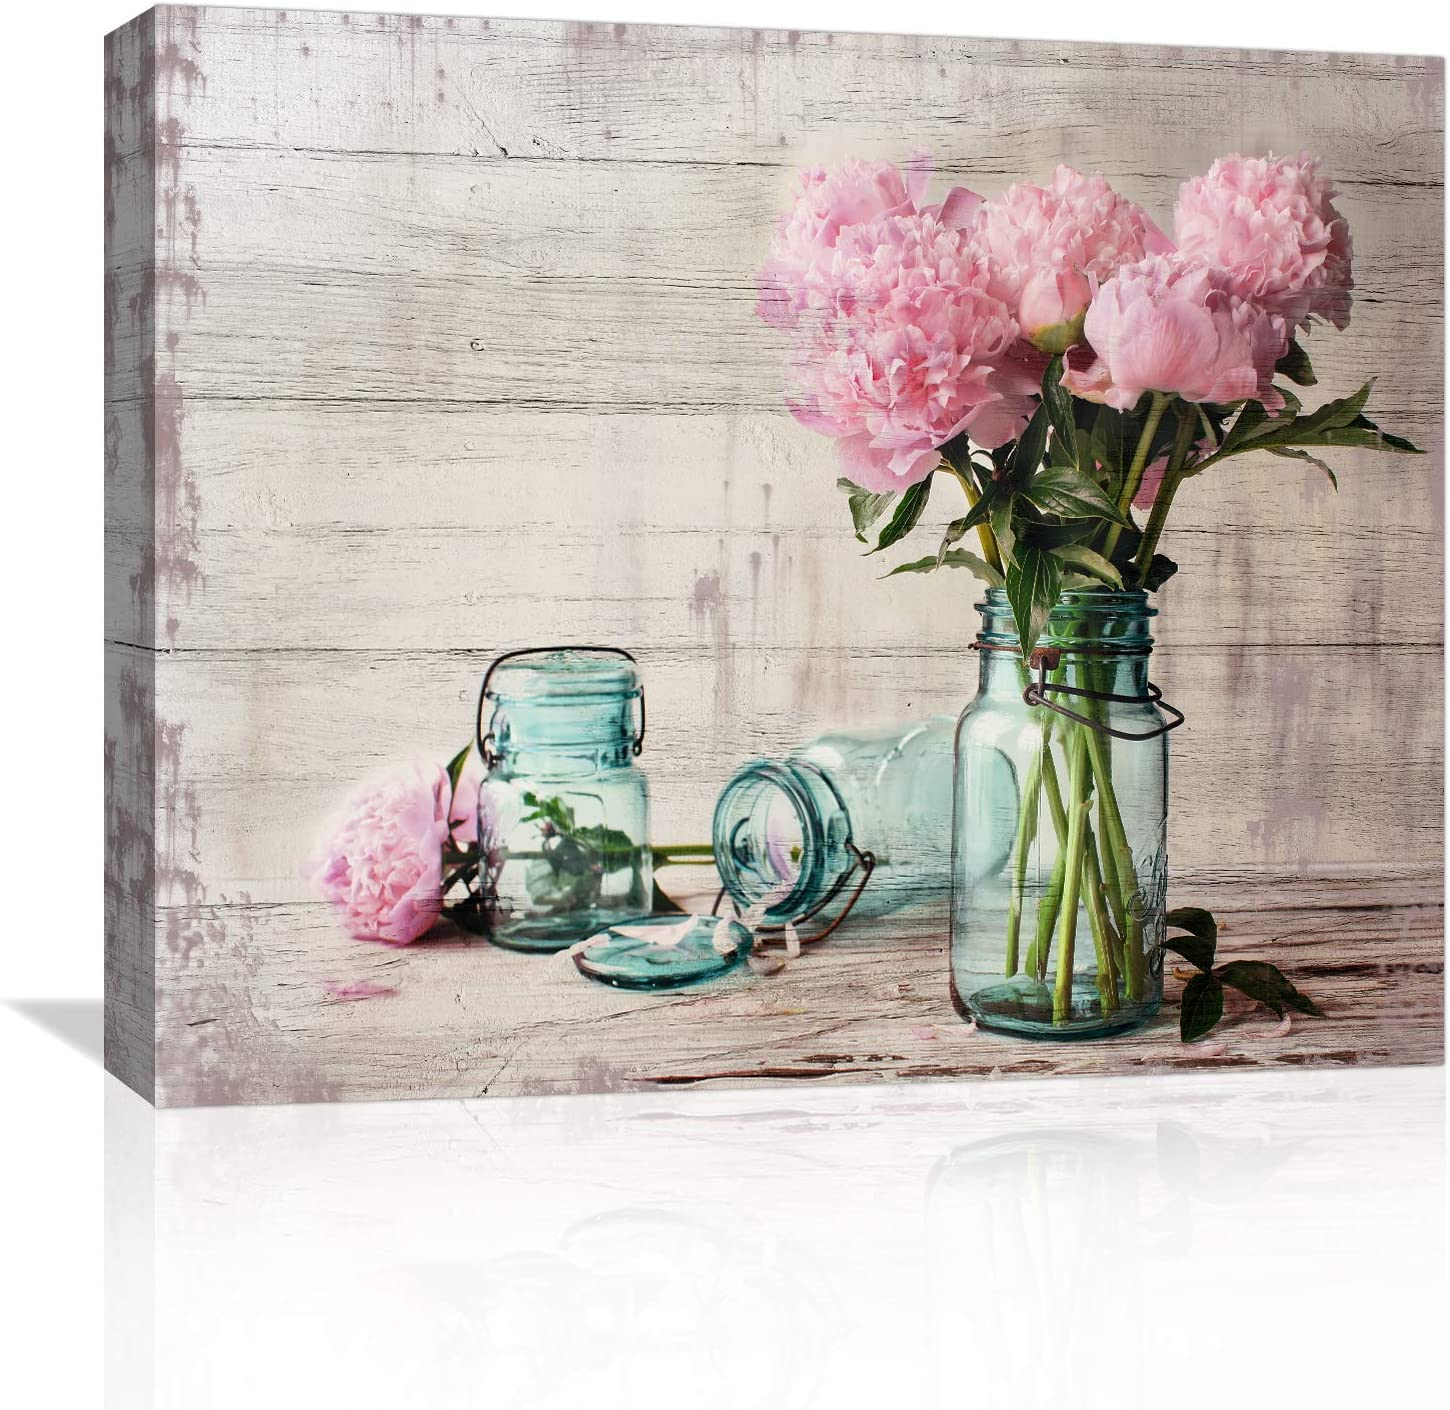 Canvas Wall-Art for Bedroom Bathroom Living-Room and Office Decor, Framed Paintings Modern Farmhouse Wall Art, Pink Flower Wall Decor Picture Artwork for Home Art Prints with Wood Frame Size 16